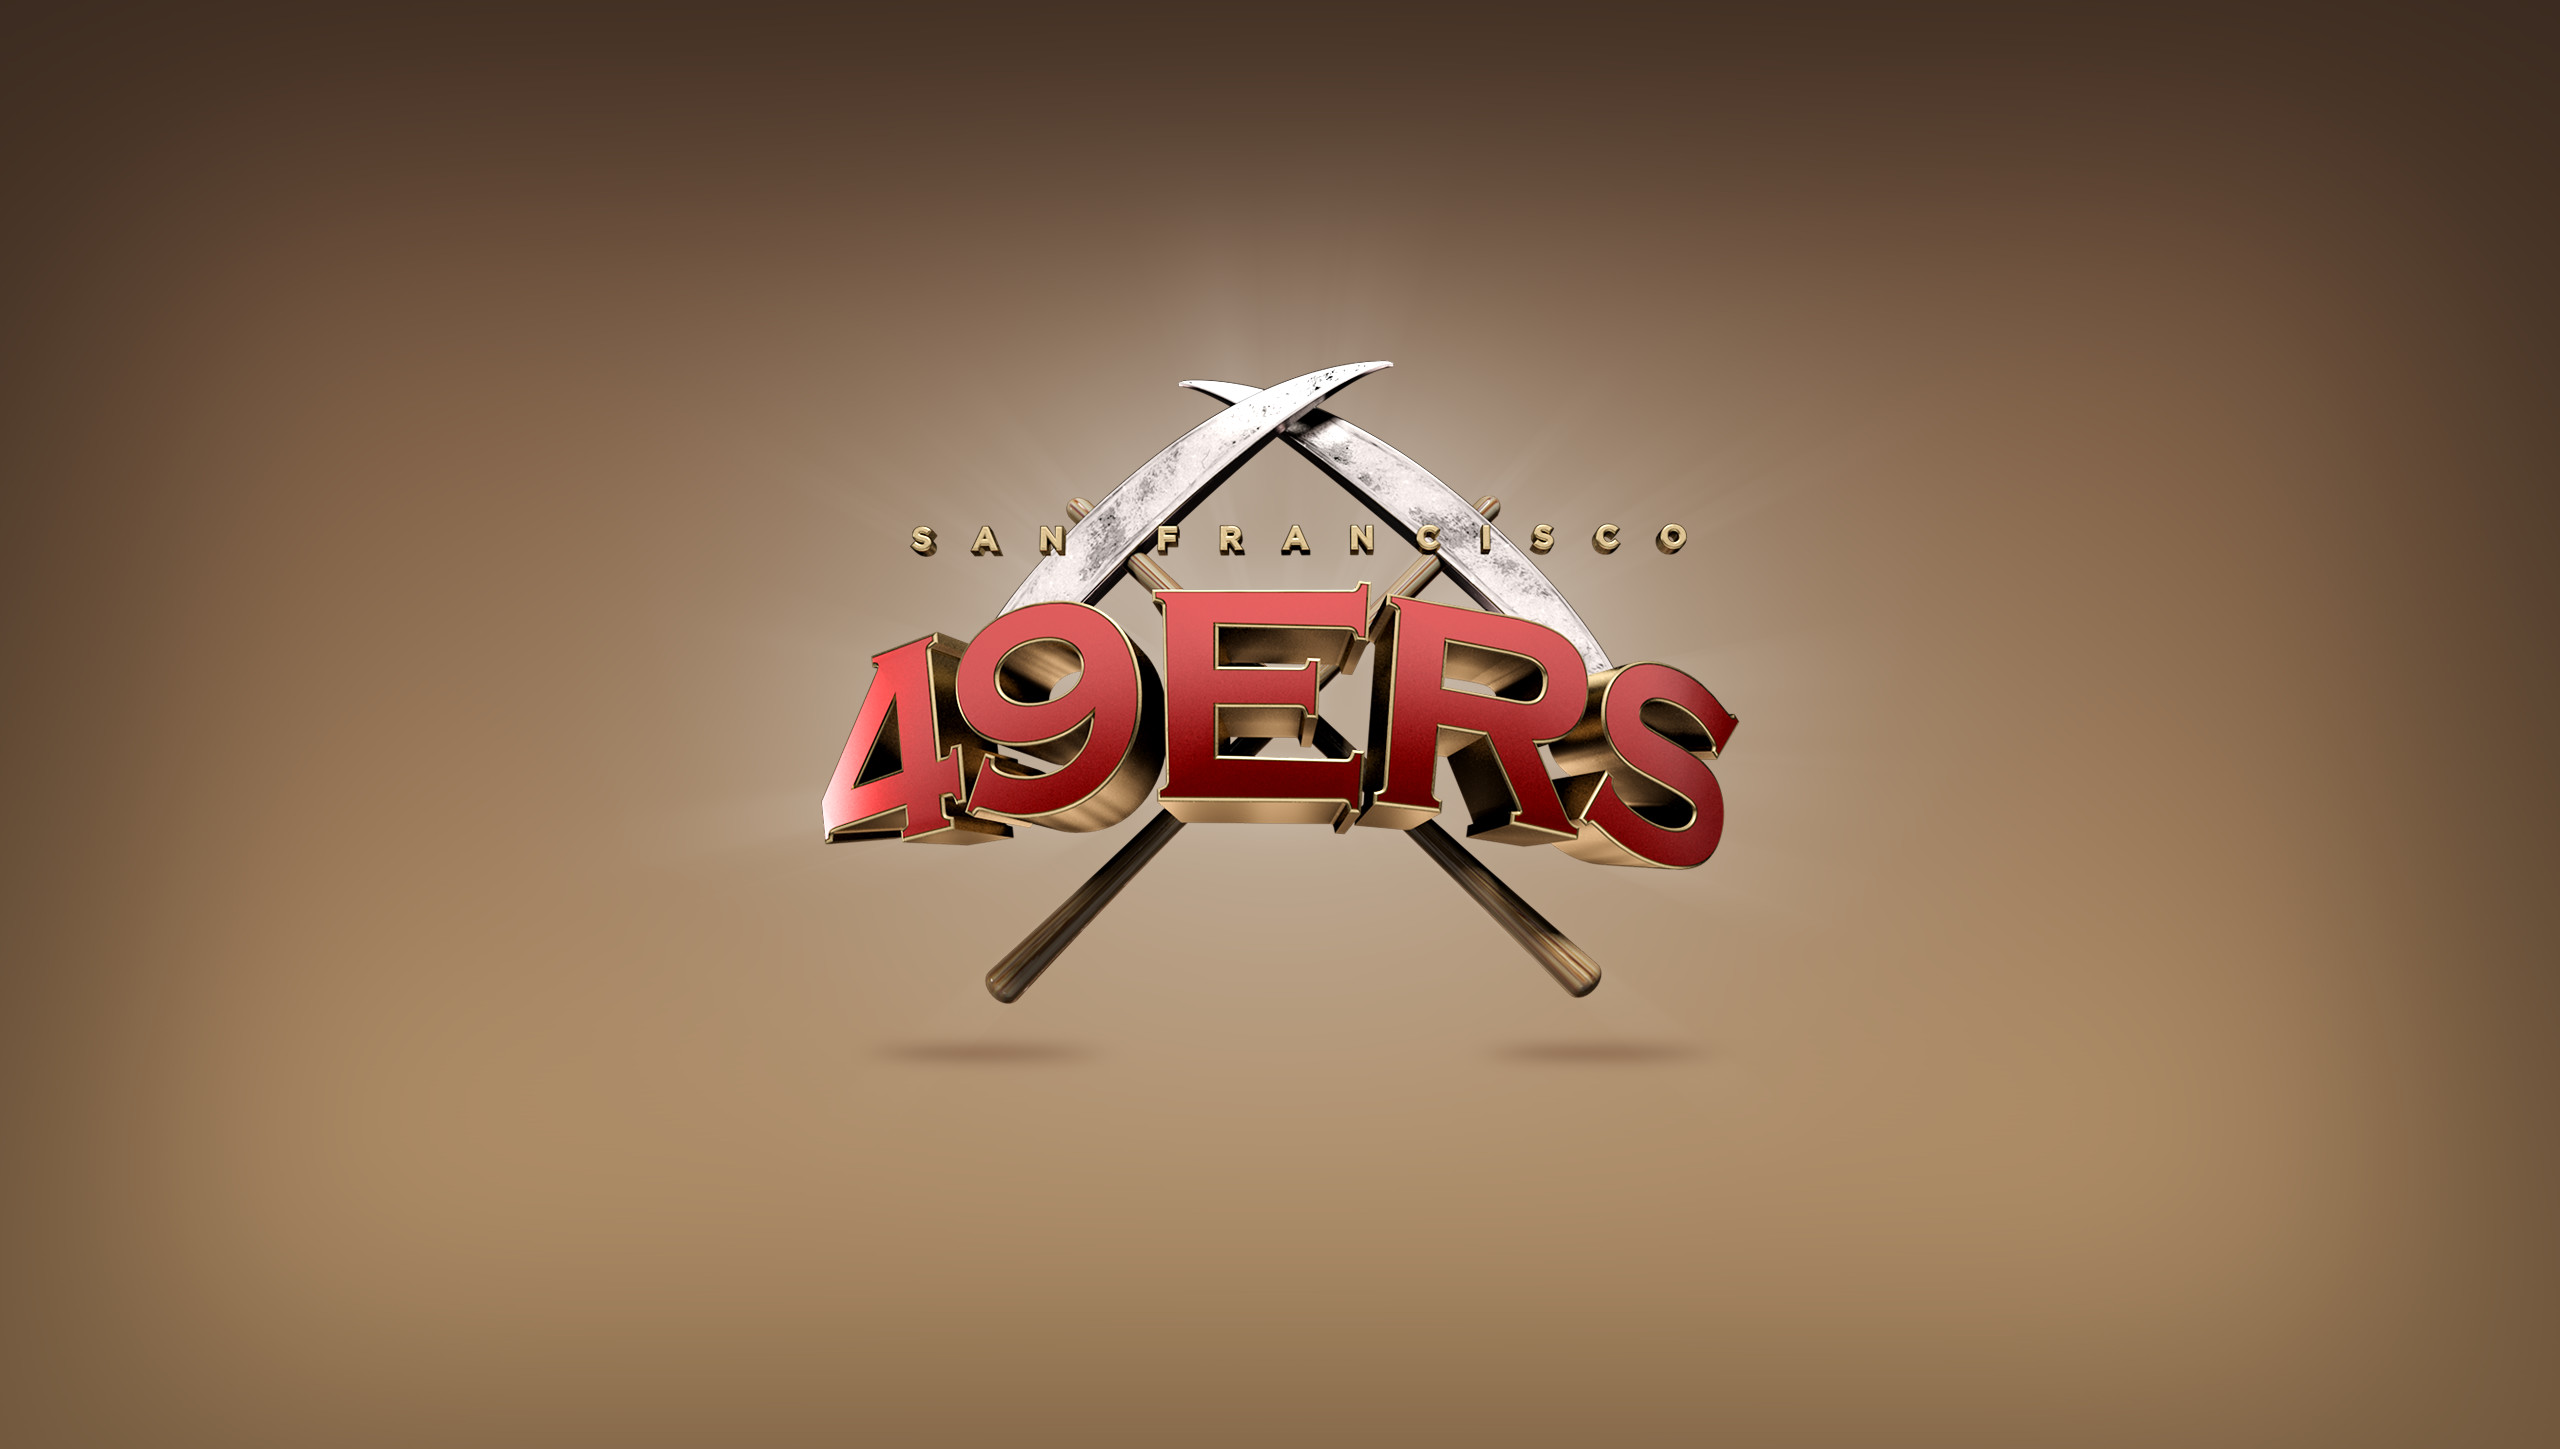 49ers live wallpaper 67 images 2560x1449 dark blue wallpaper qige87 com voltagebd Images